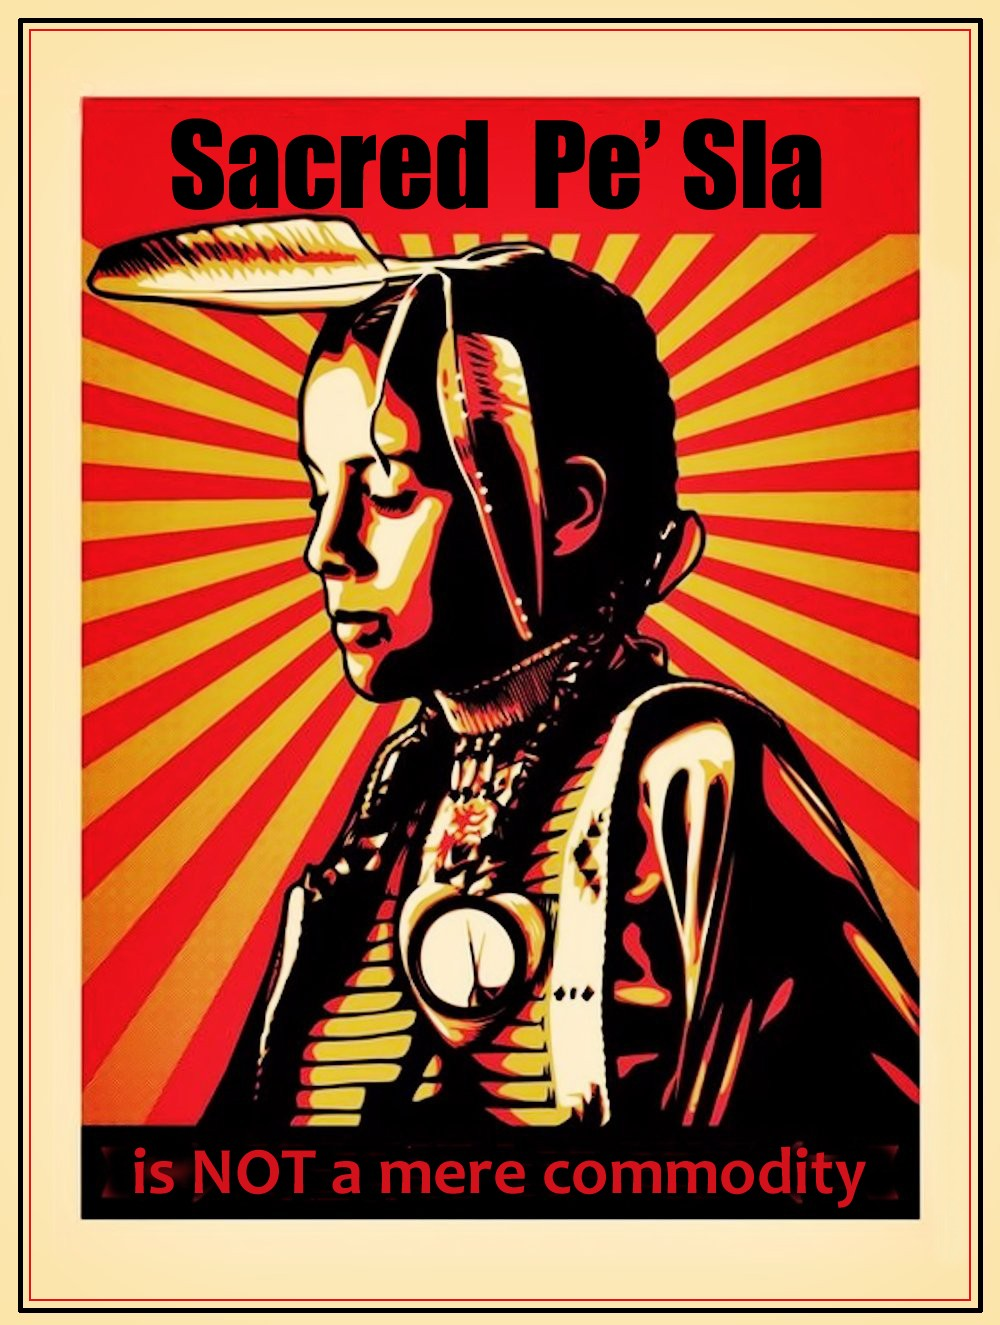 00 Sacred Pe' Sla is NOT a Mere Commodity. Sioux. 13.12.12